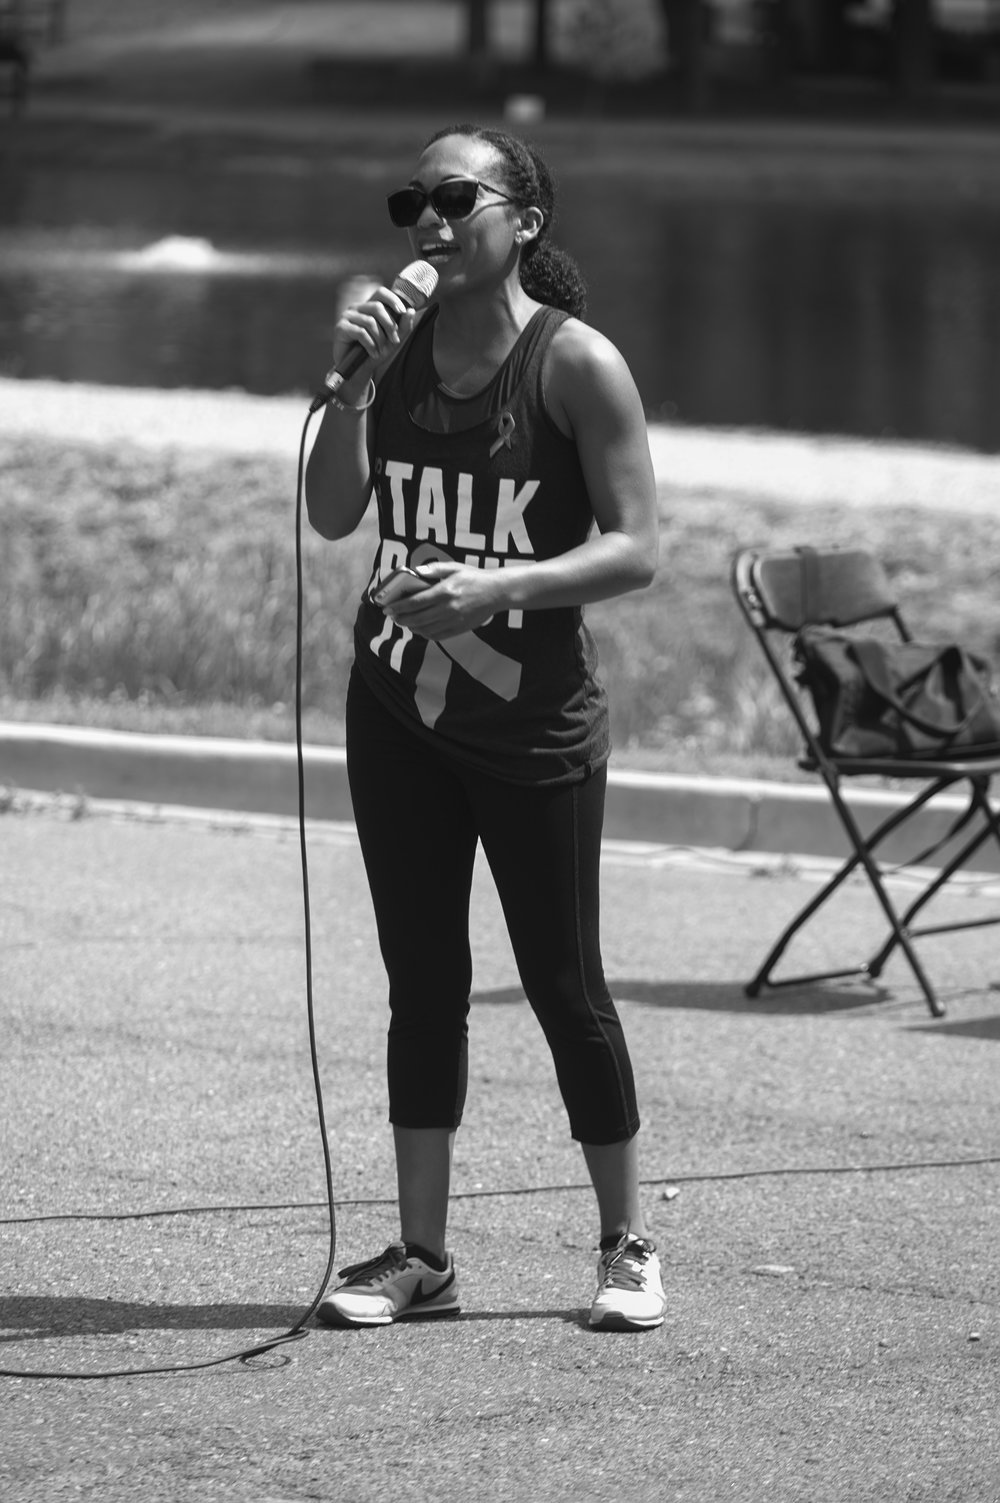 2nd Annual Let's Talk About It Mental Health Awareness Walk @ Park Rd Park 5-20-17 by Jon Strayhorn 135.jpg